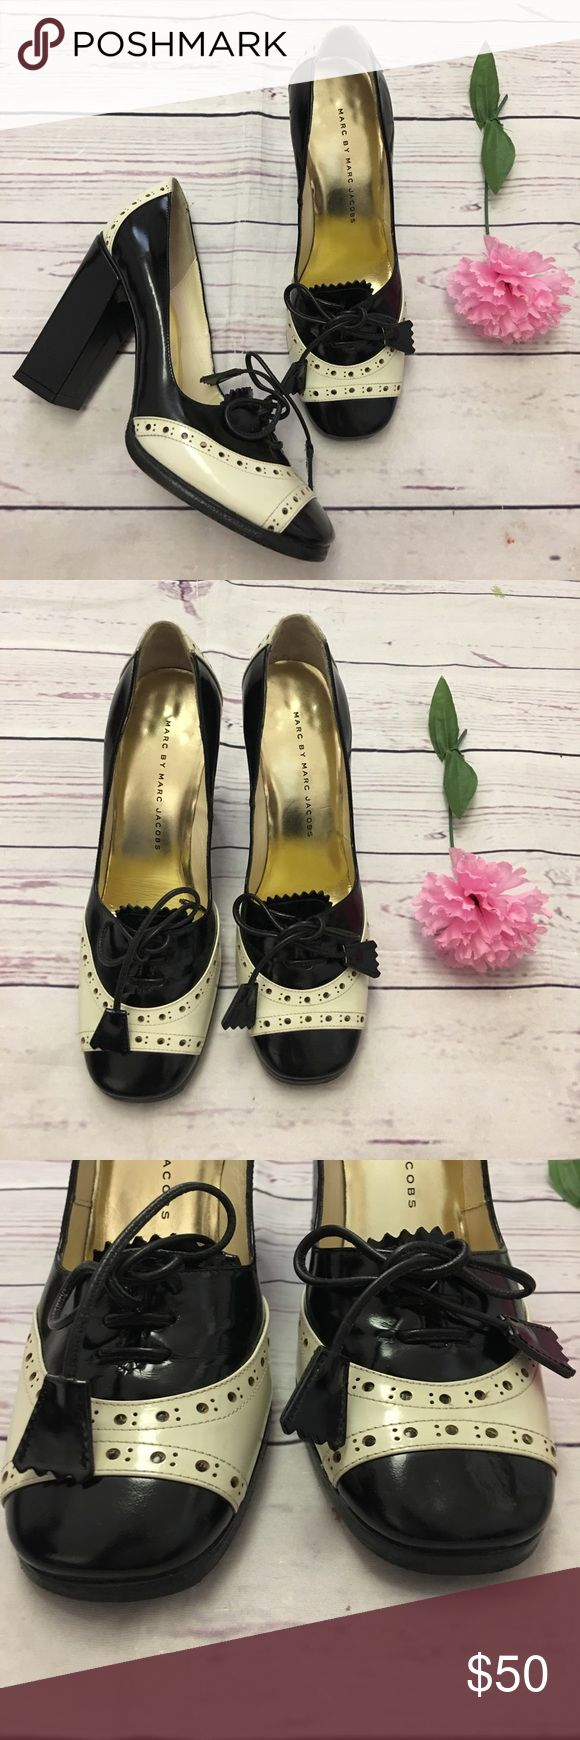 """Marc By Marc Jacobs black white lace heels sz 36 EUC no stains on patent leather, small cuffin on right shoe(last pic)lace pumps with block heel, size 36 heel size 4"""" Marc By Marc Jacobs Shoes Heels"""